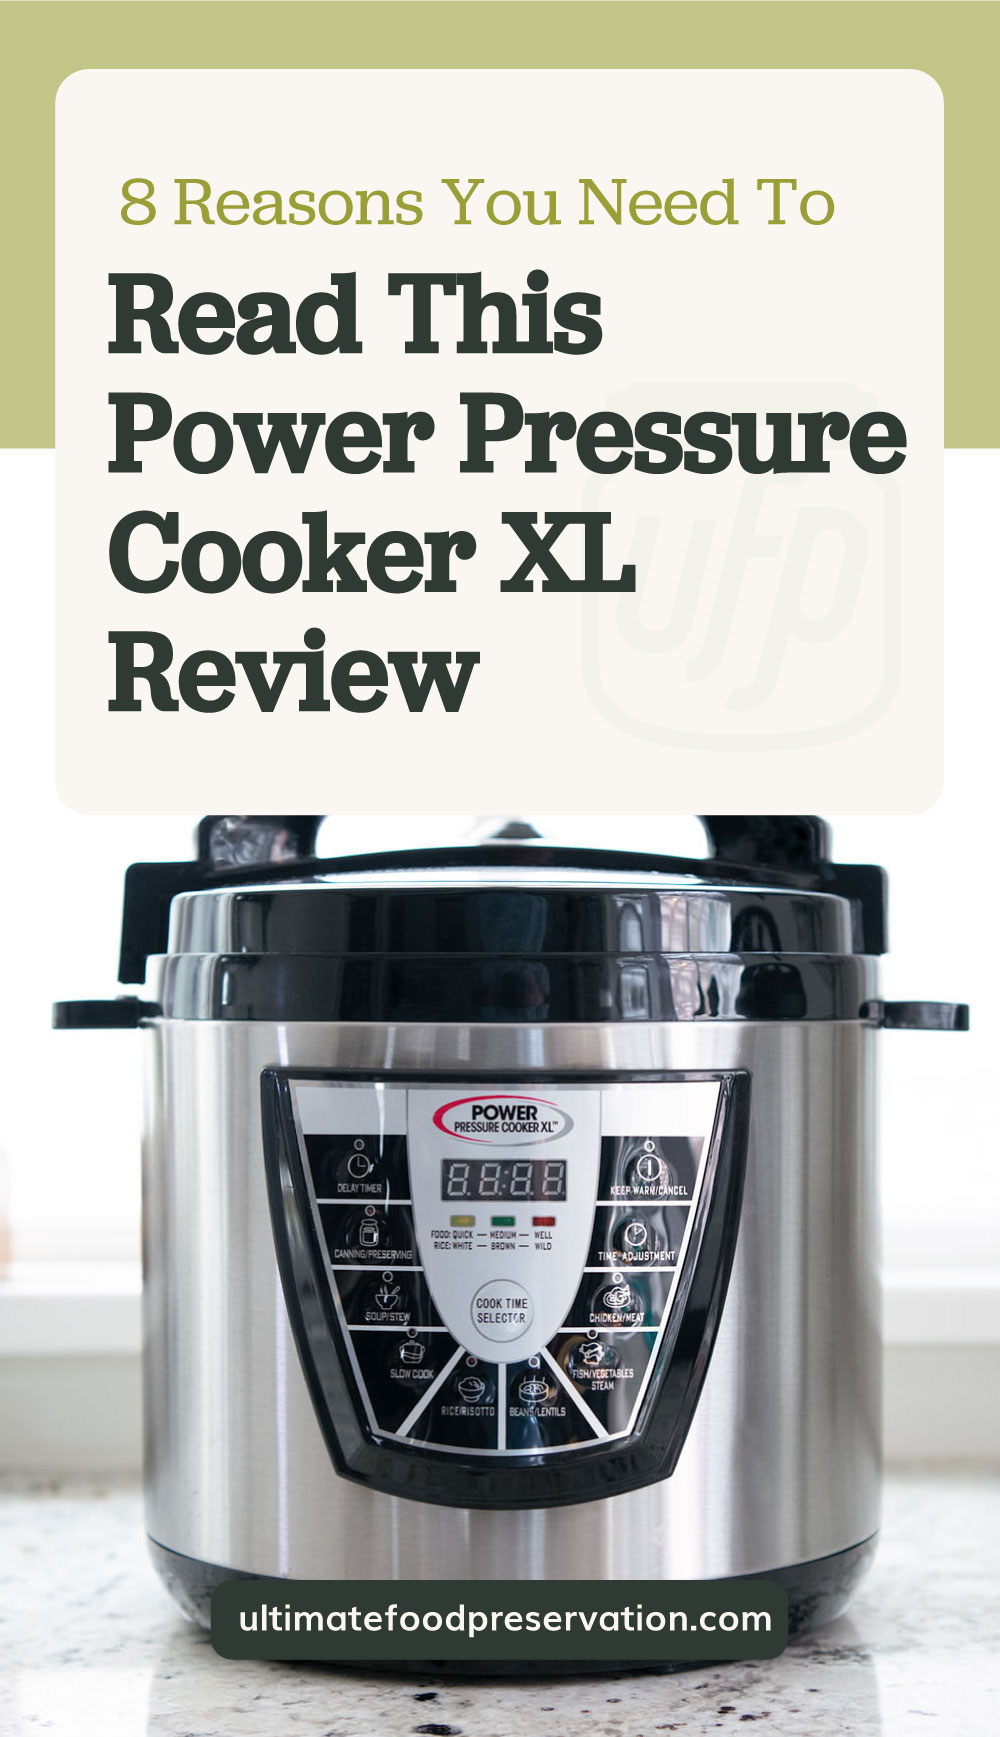 """Text area which says """"8 Reasons You Need to Read this Power Pressure Cooker XL Review"""" next to an image of a power pressure cooker XL followed by another text area which says ultimatefoodpreservation.com"""